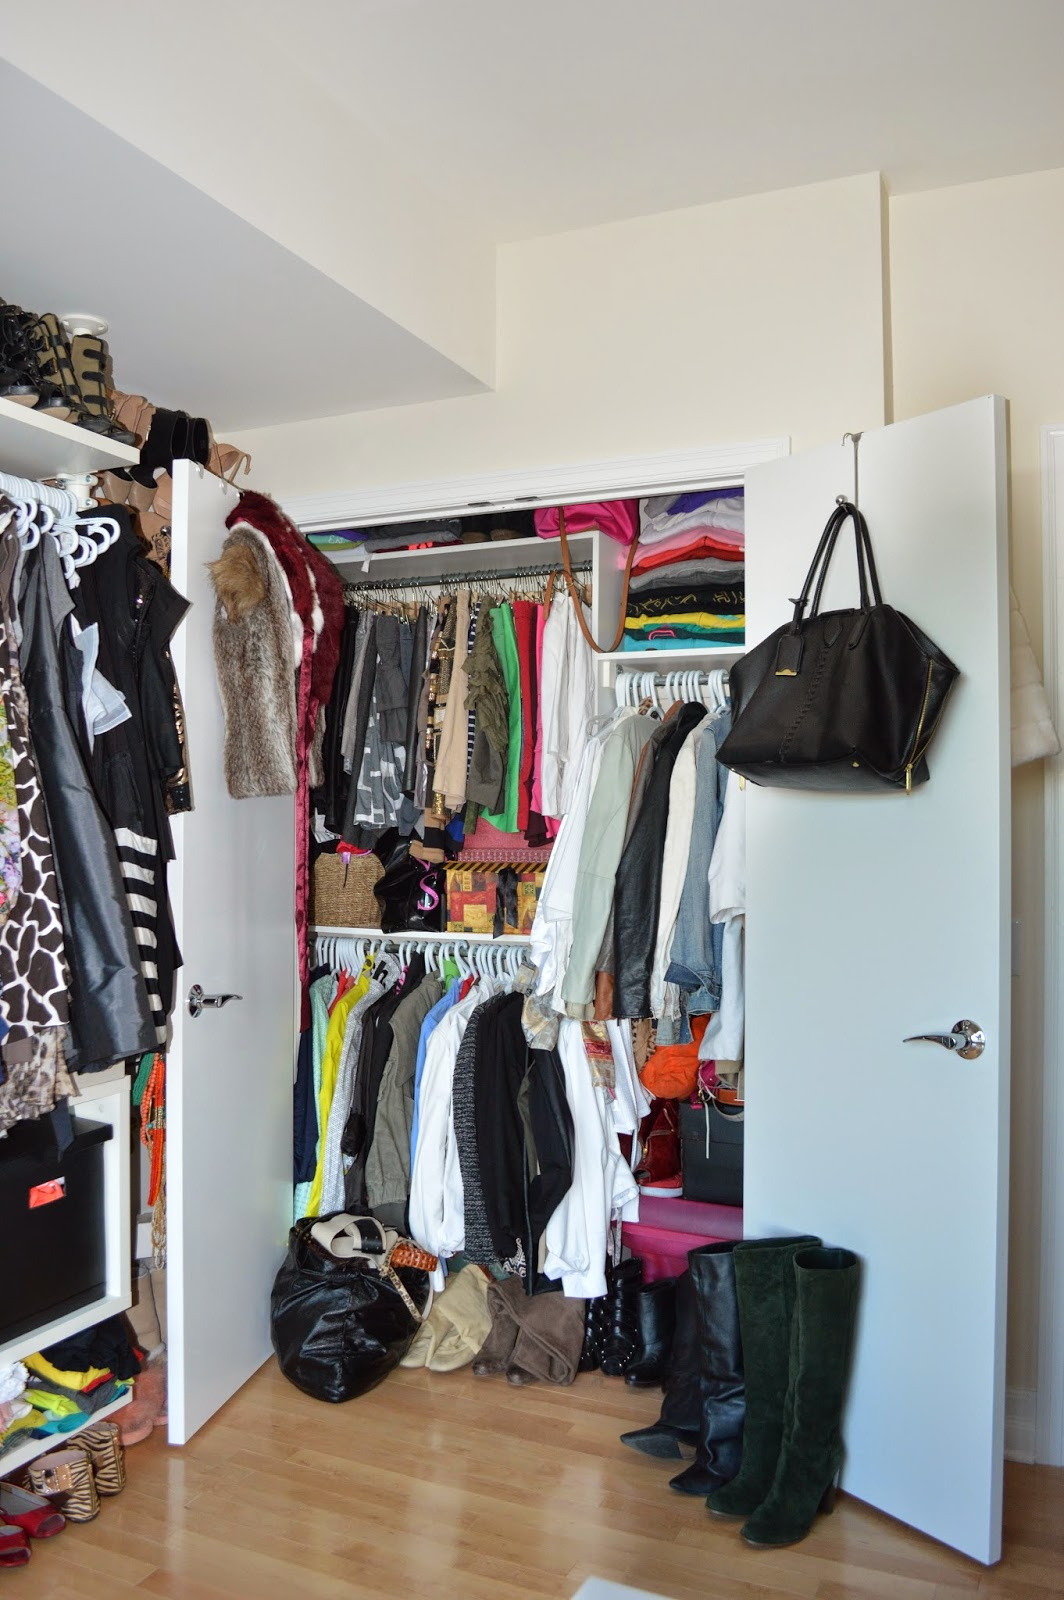 Inside The U0027realu0027 Closet I Keep Jackets, Skirts And Folded Sweats U0026  Hoodies. There Are Also Several Boxes Stuffed Underneath Filled With  Leggings, Tights, ...